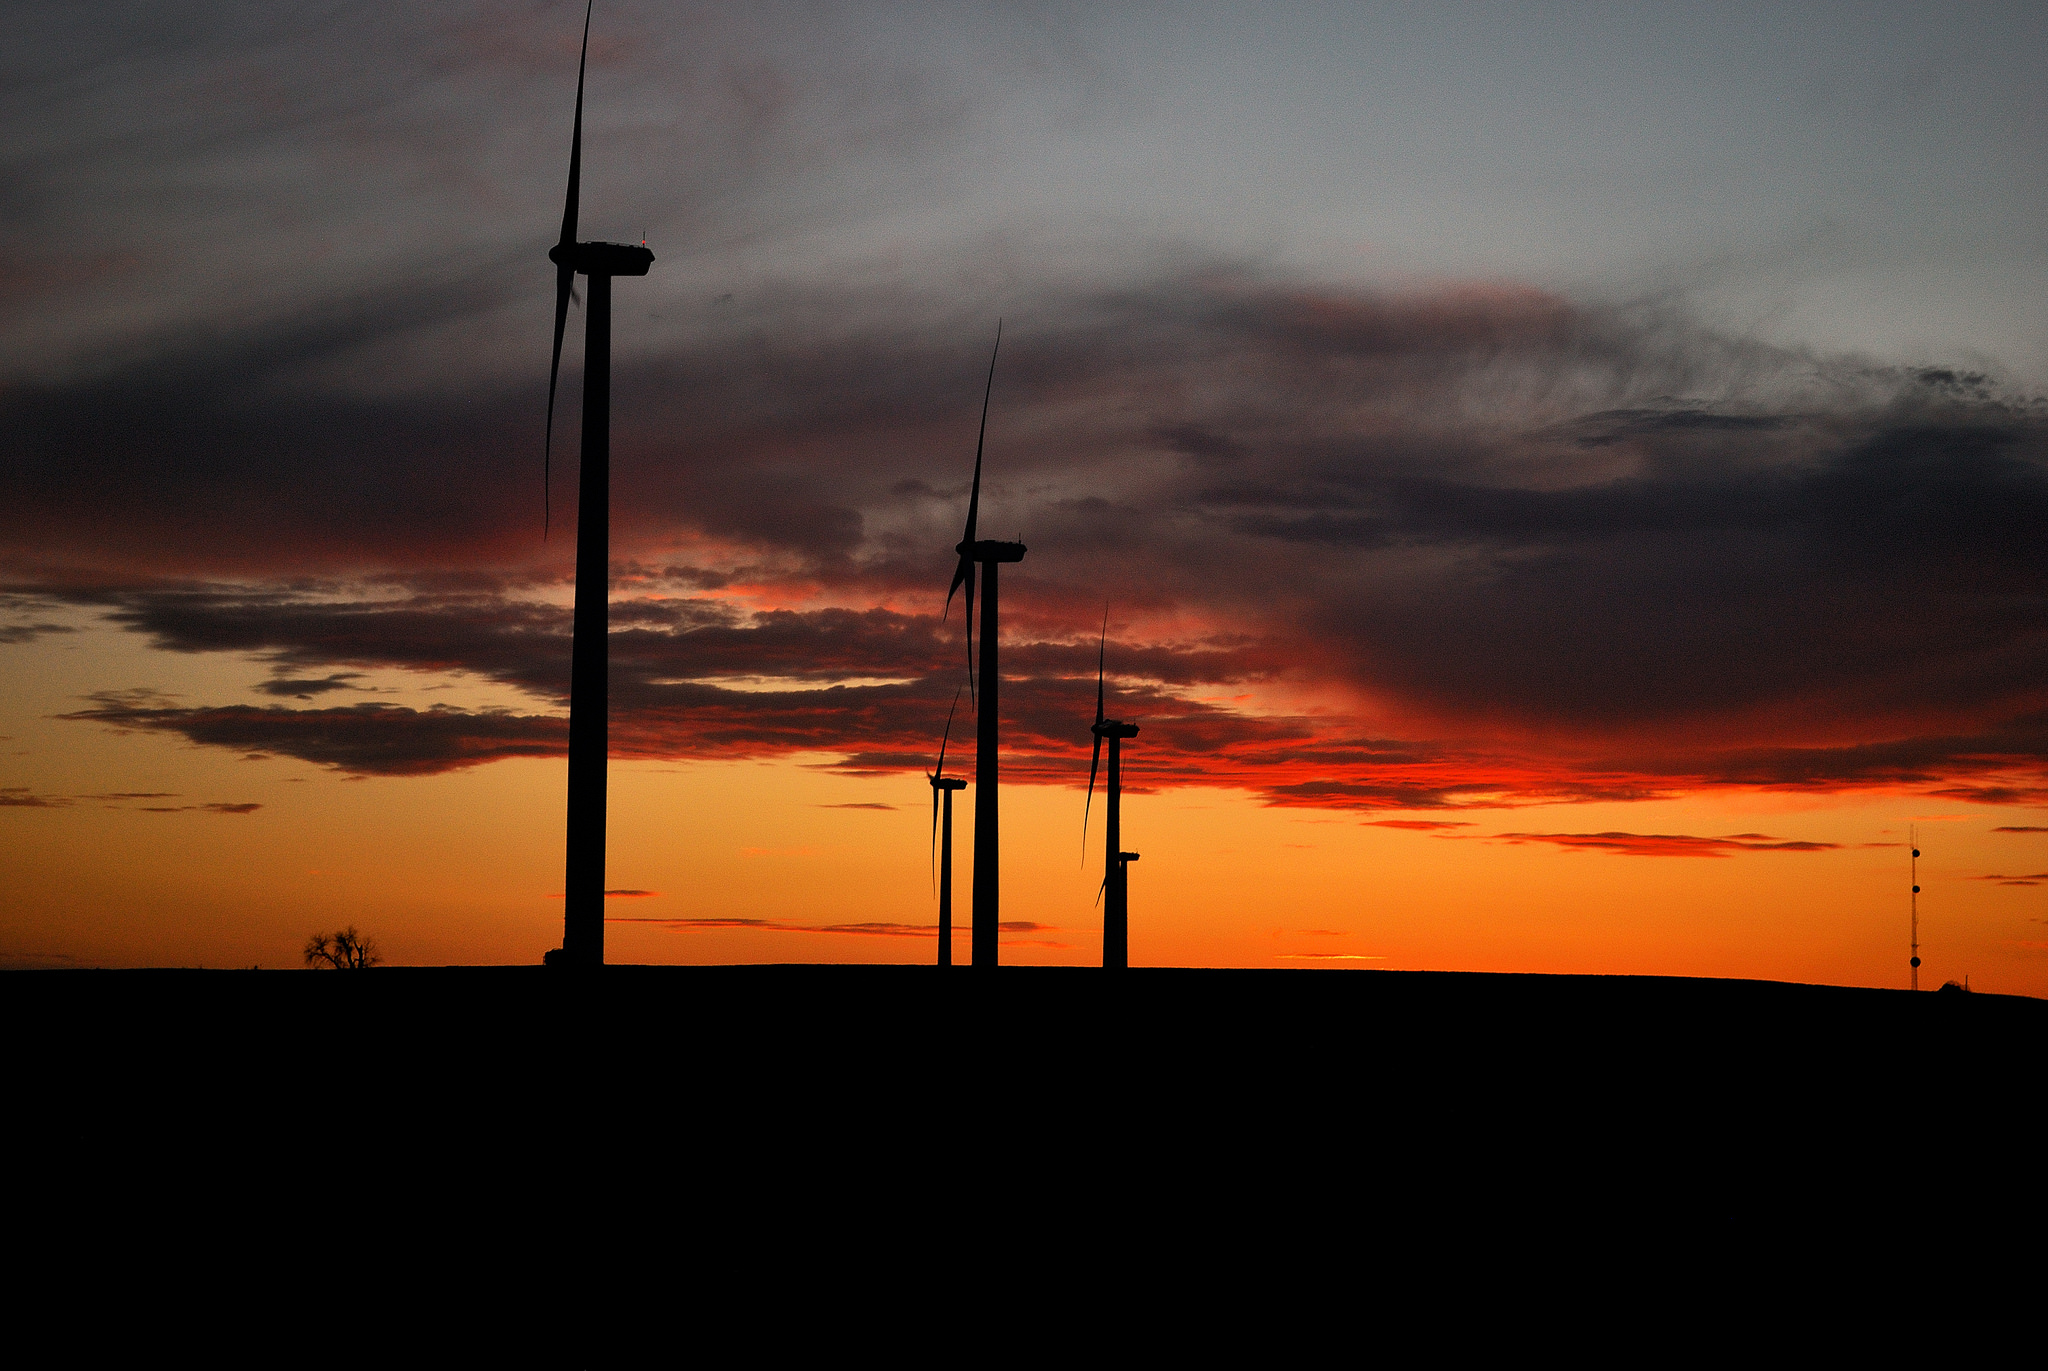 Sunset Turbines